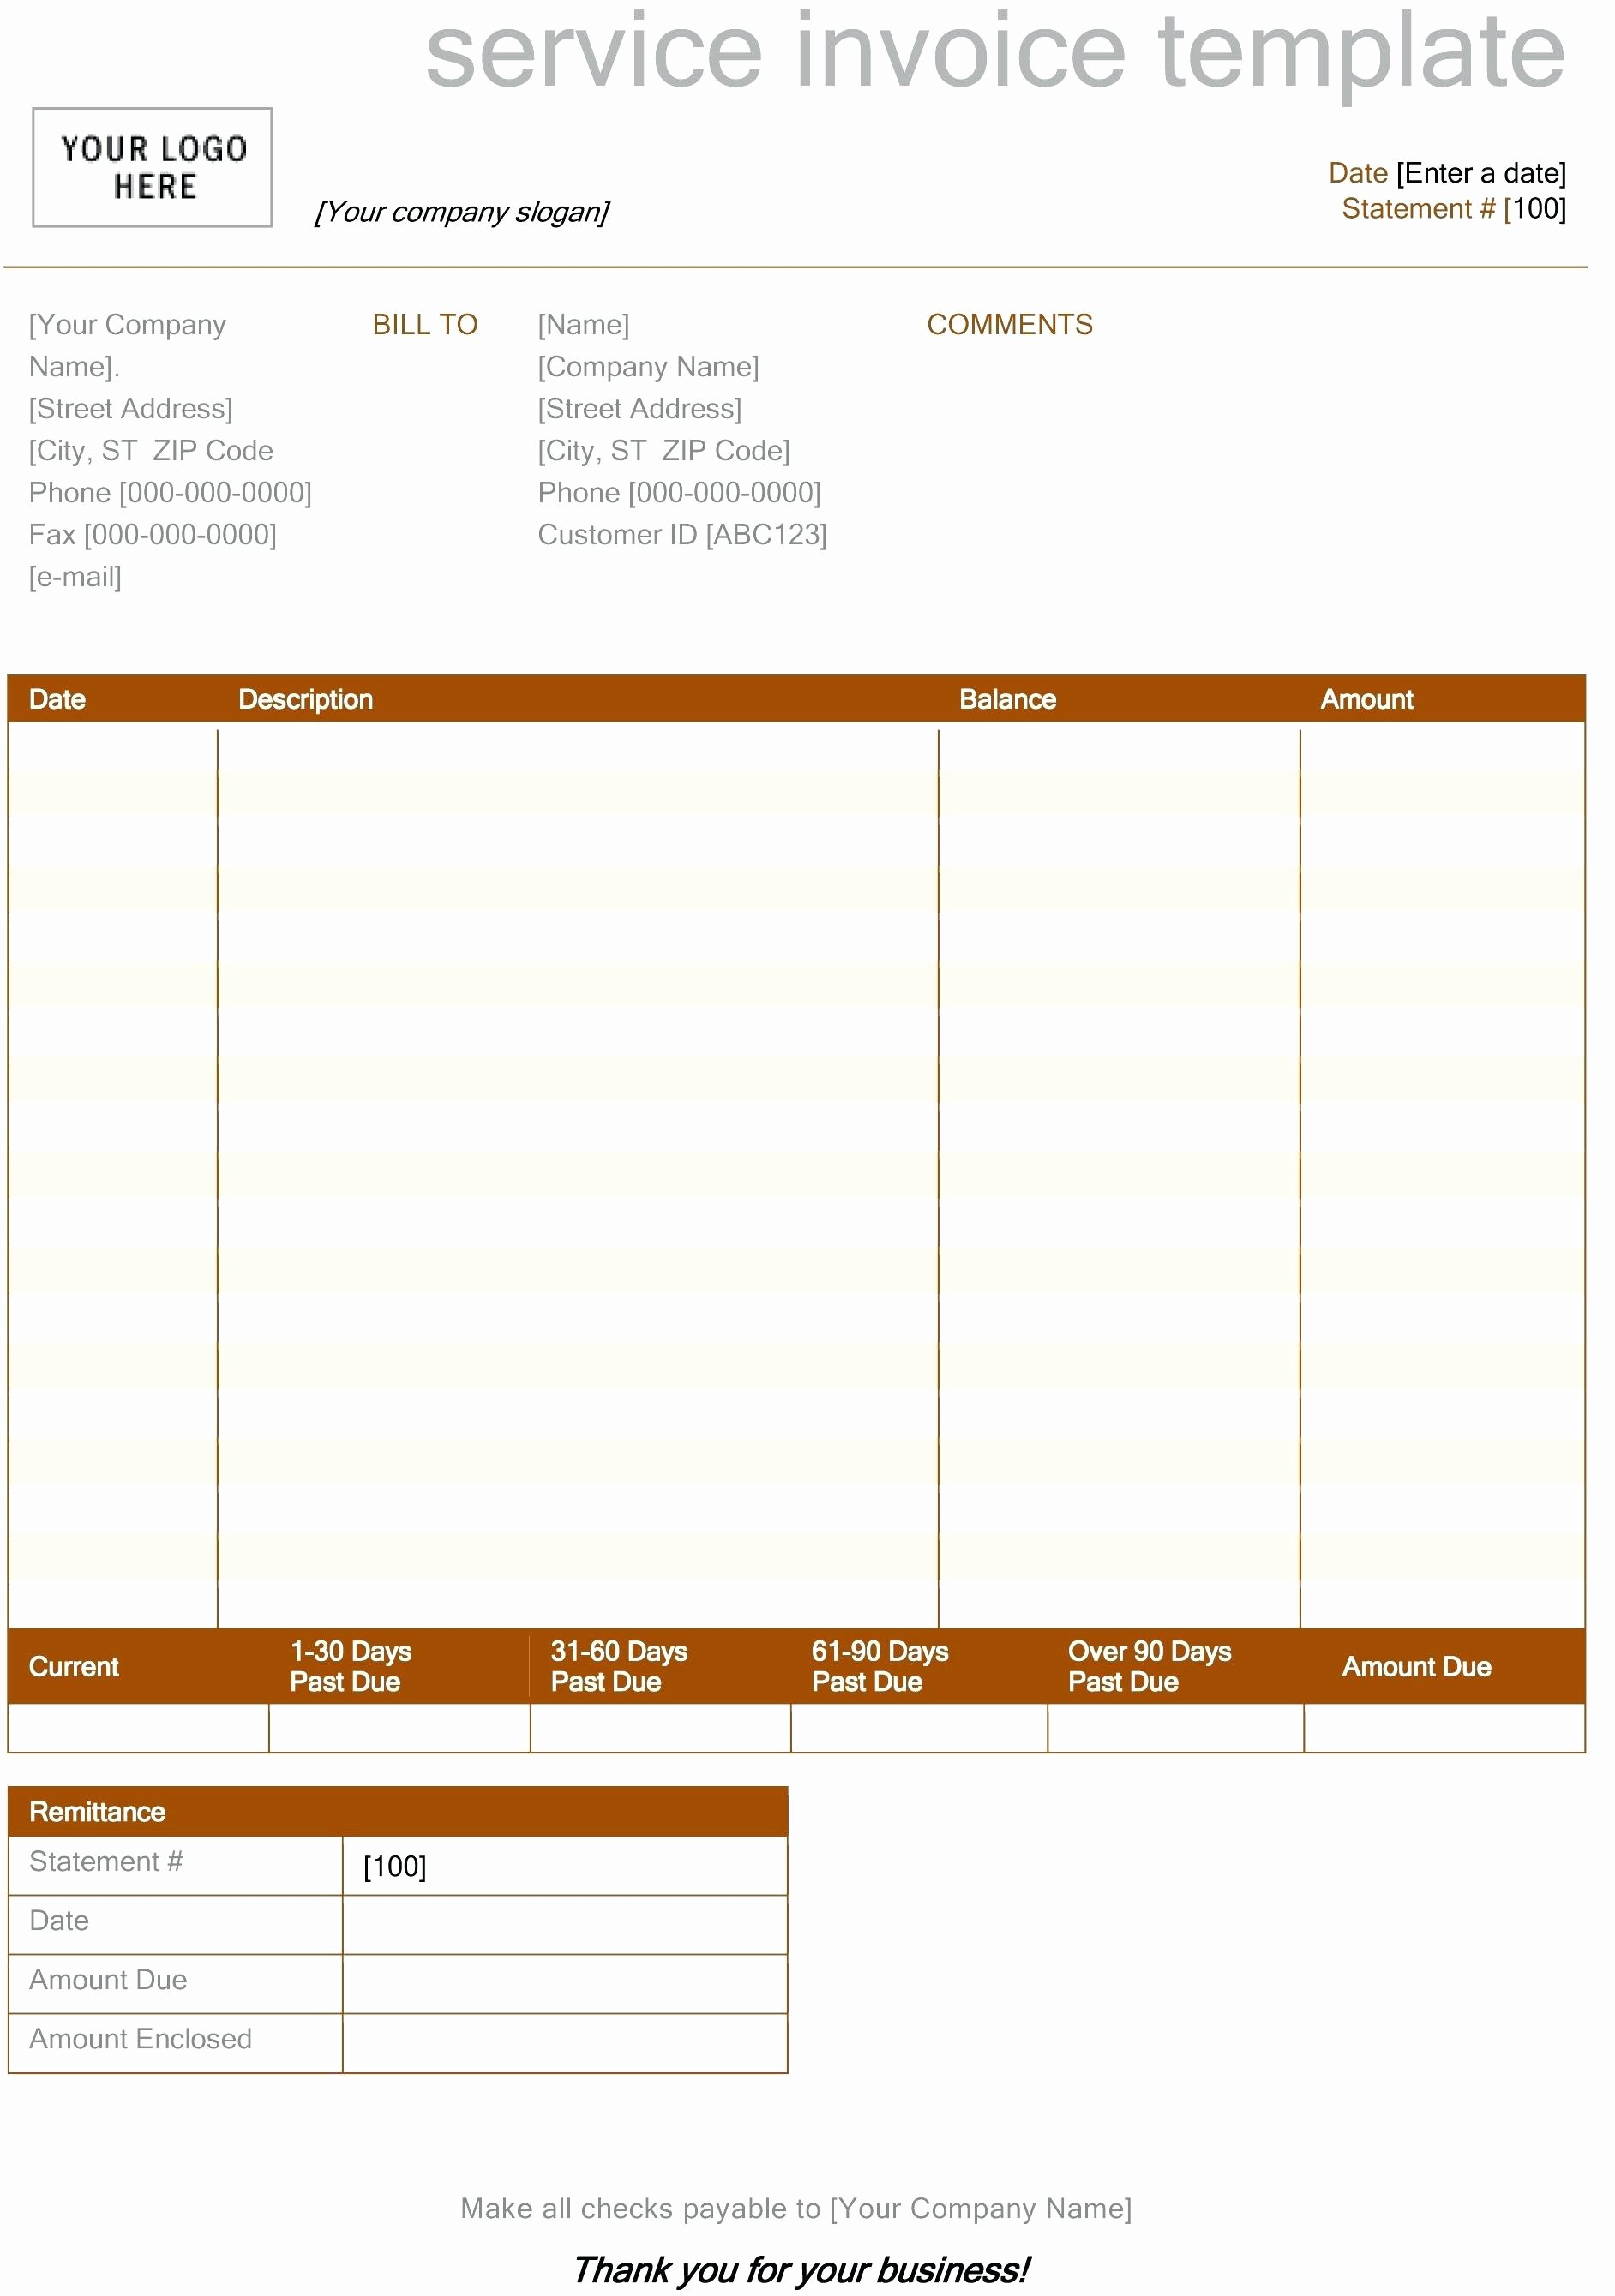 Past Due Invoice Template New Template Past Due Invoice Template